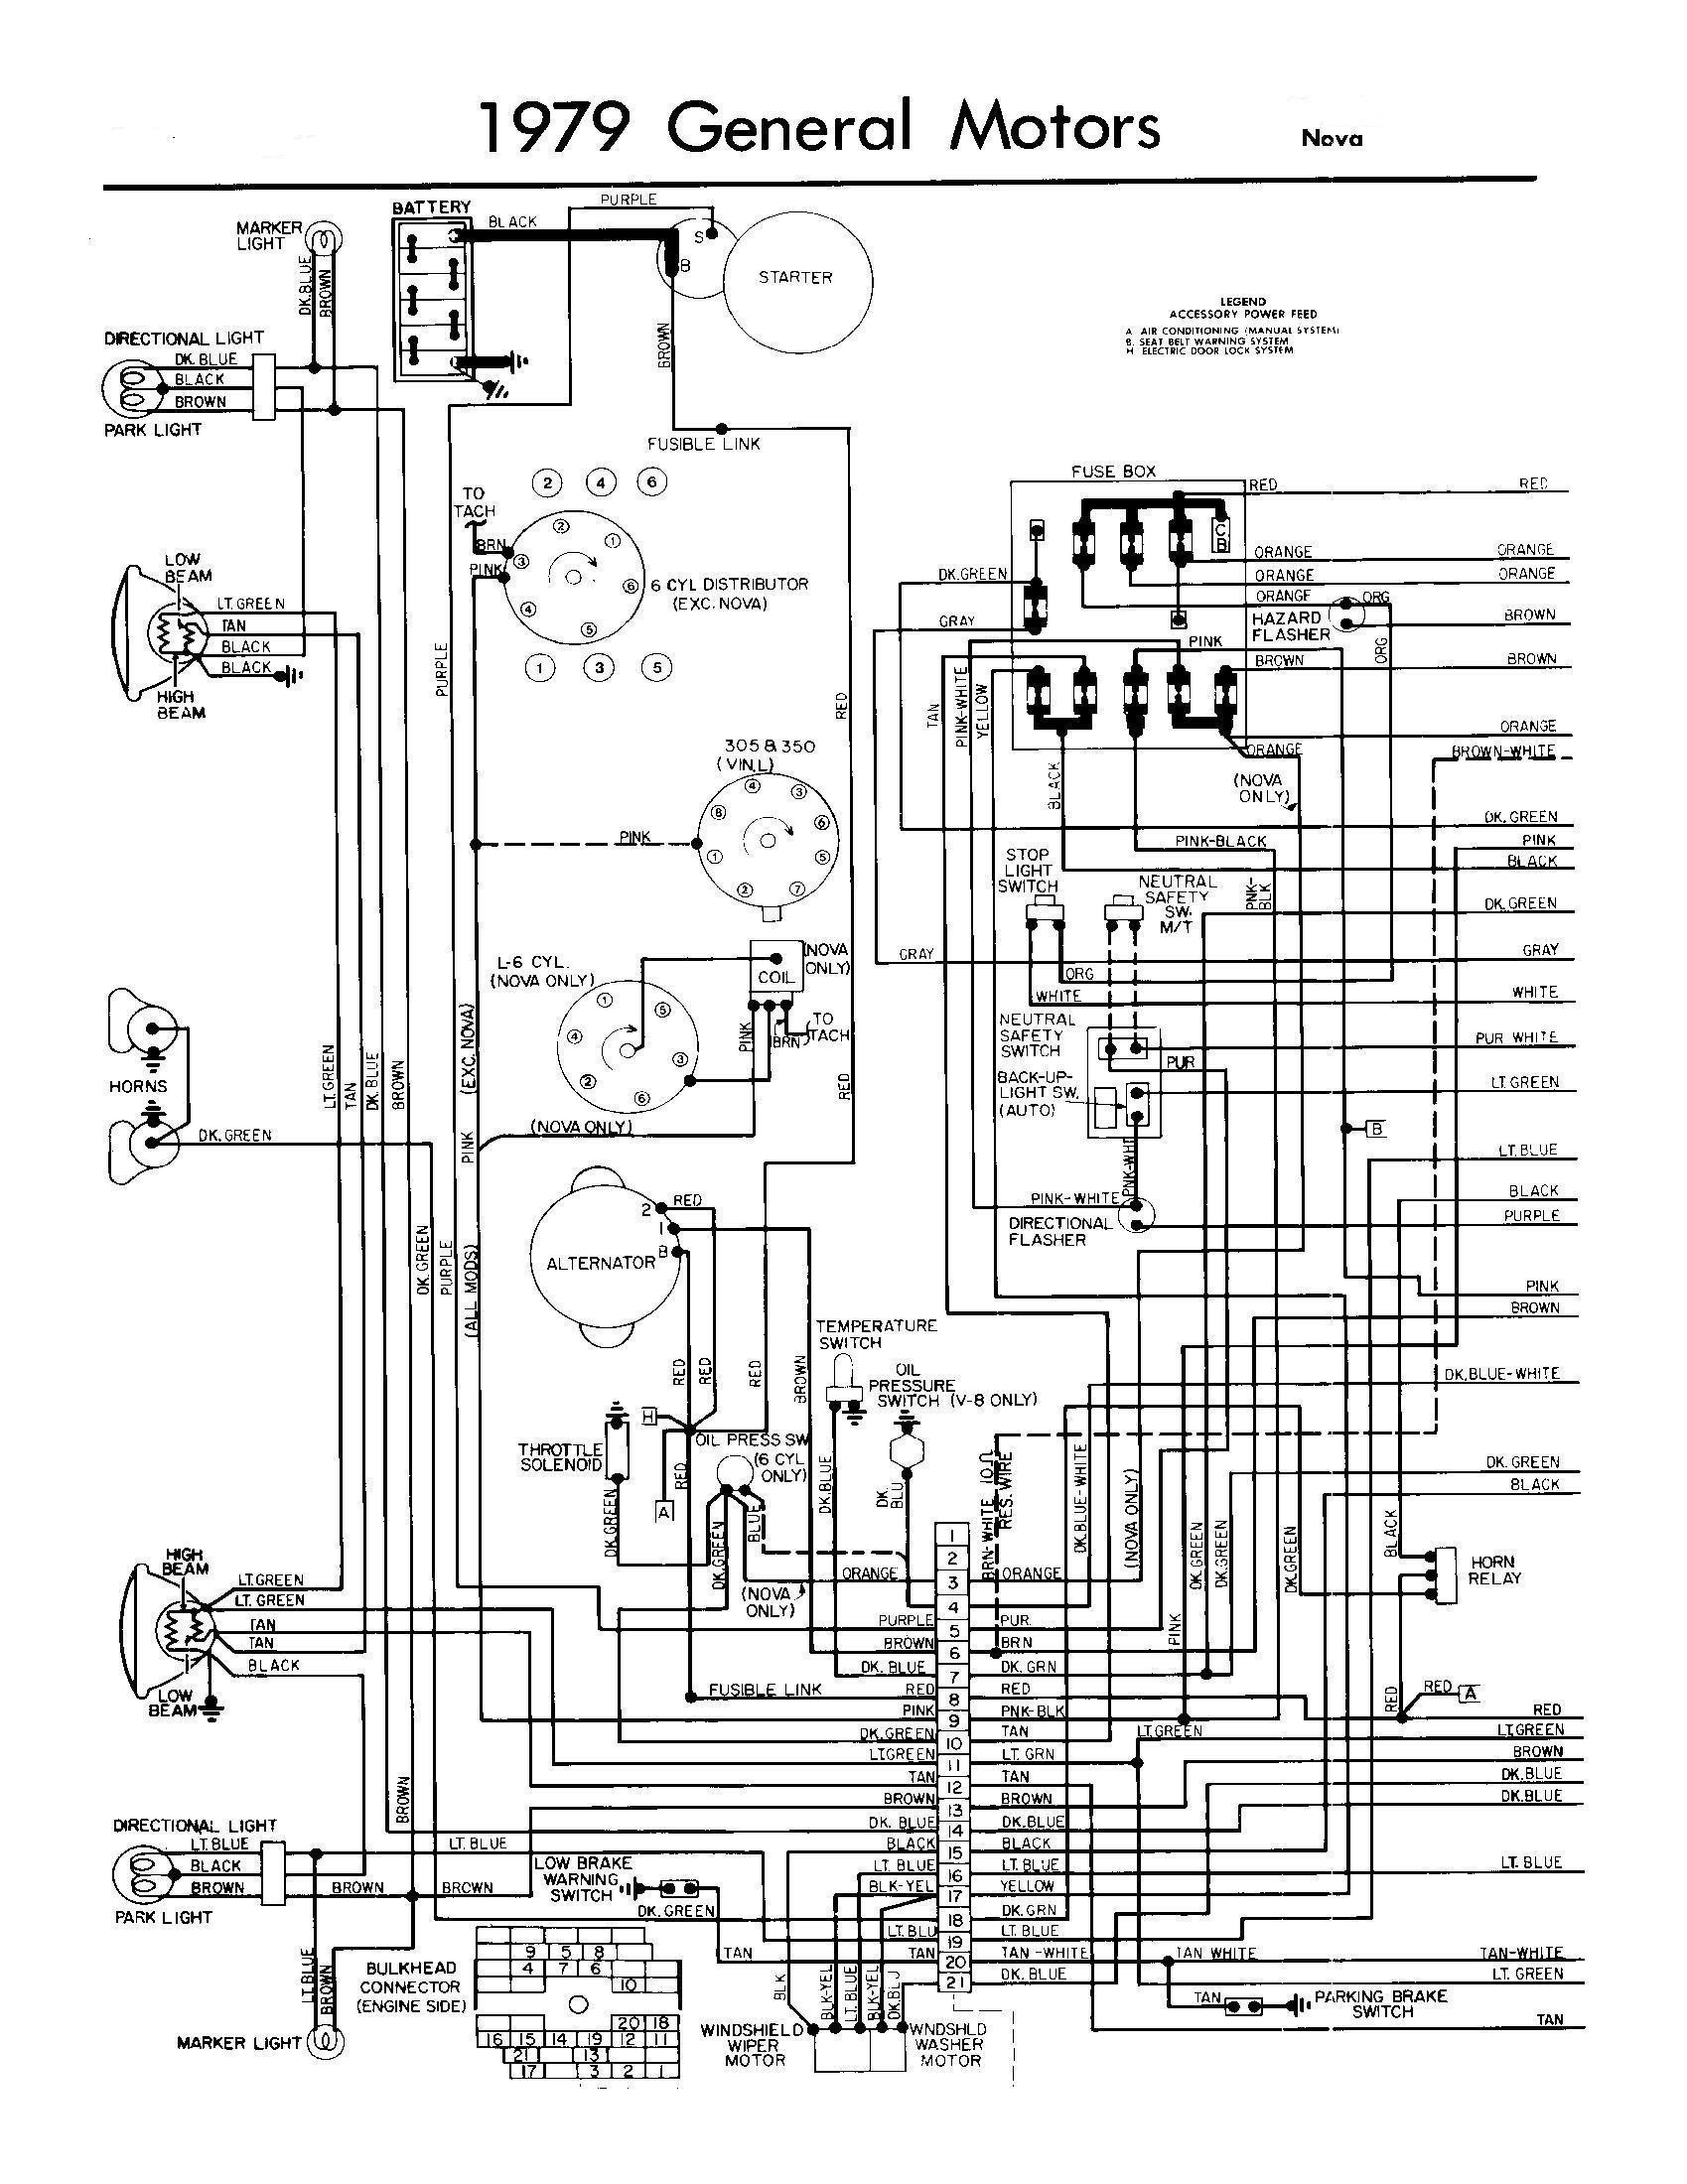 Wiring Diagram Replace Generator With Alternator 6 V26No1 Fig4 - Wiring Diagram Replace Generator With Alternator